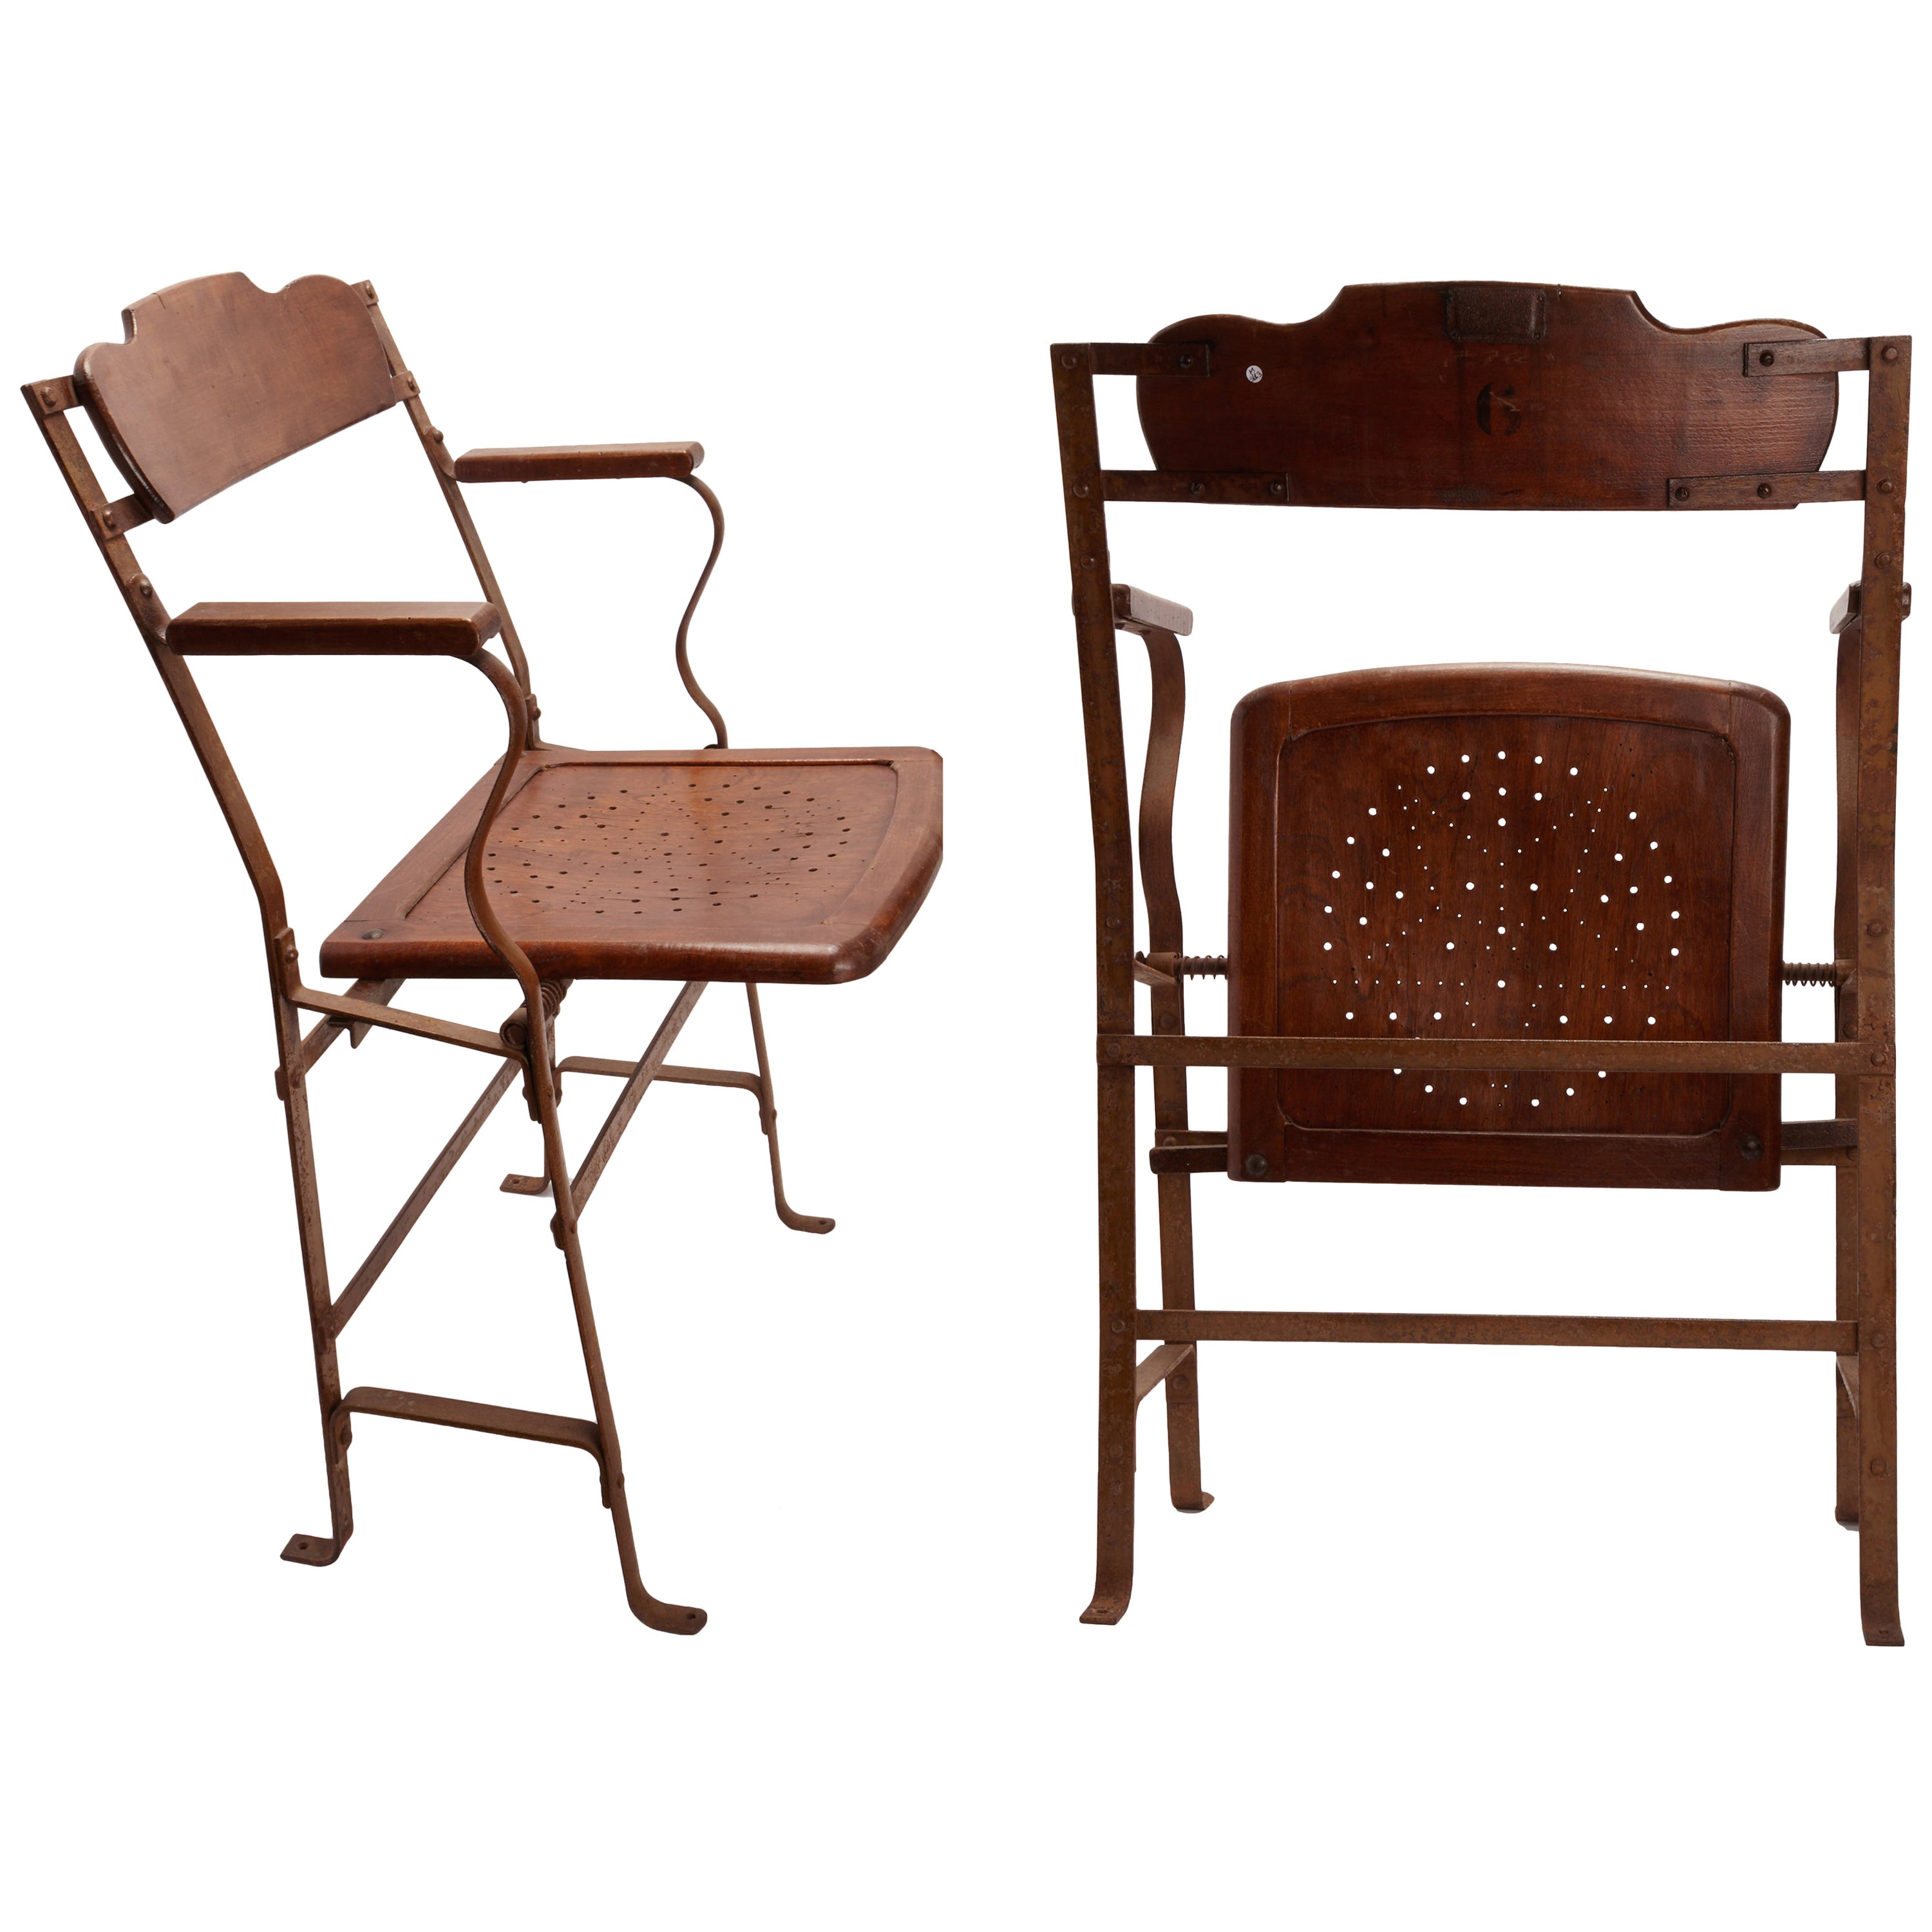 Pair of Movie Theater Chairs, France, 1900